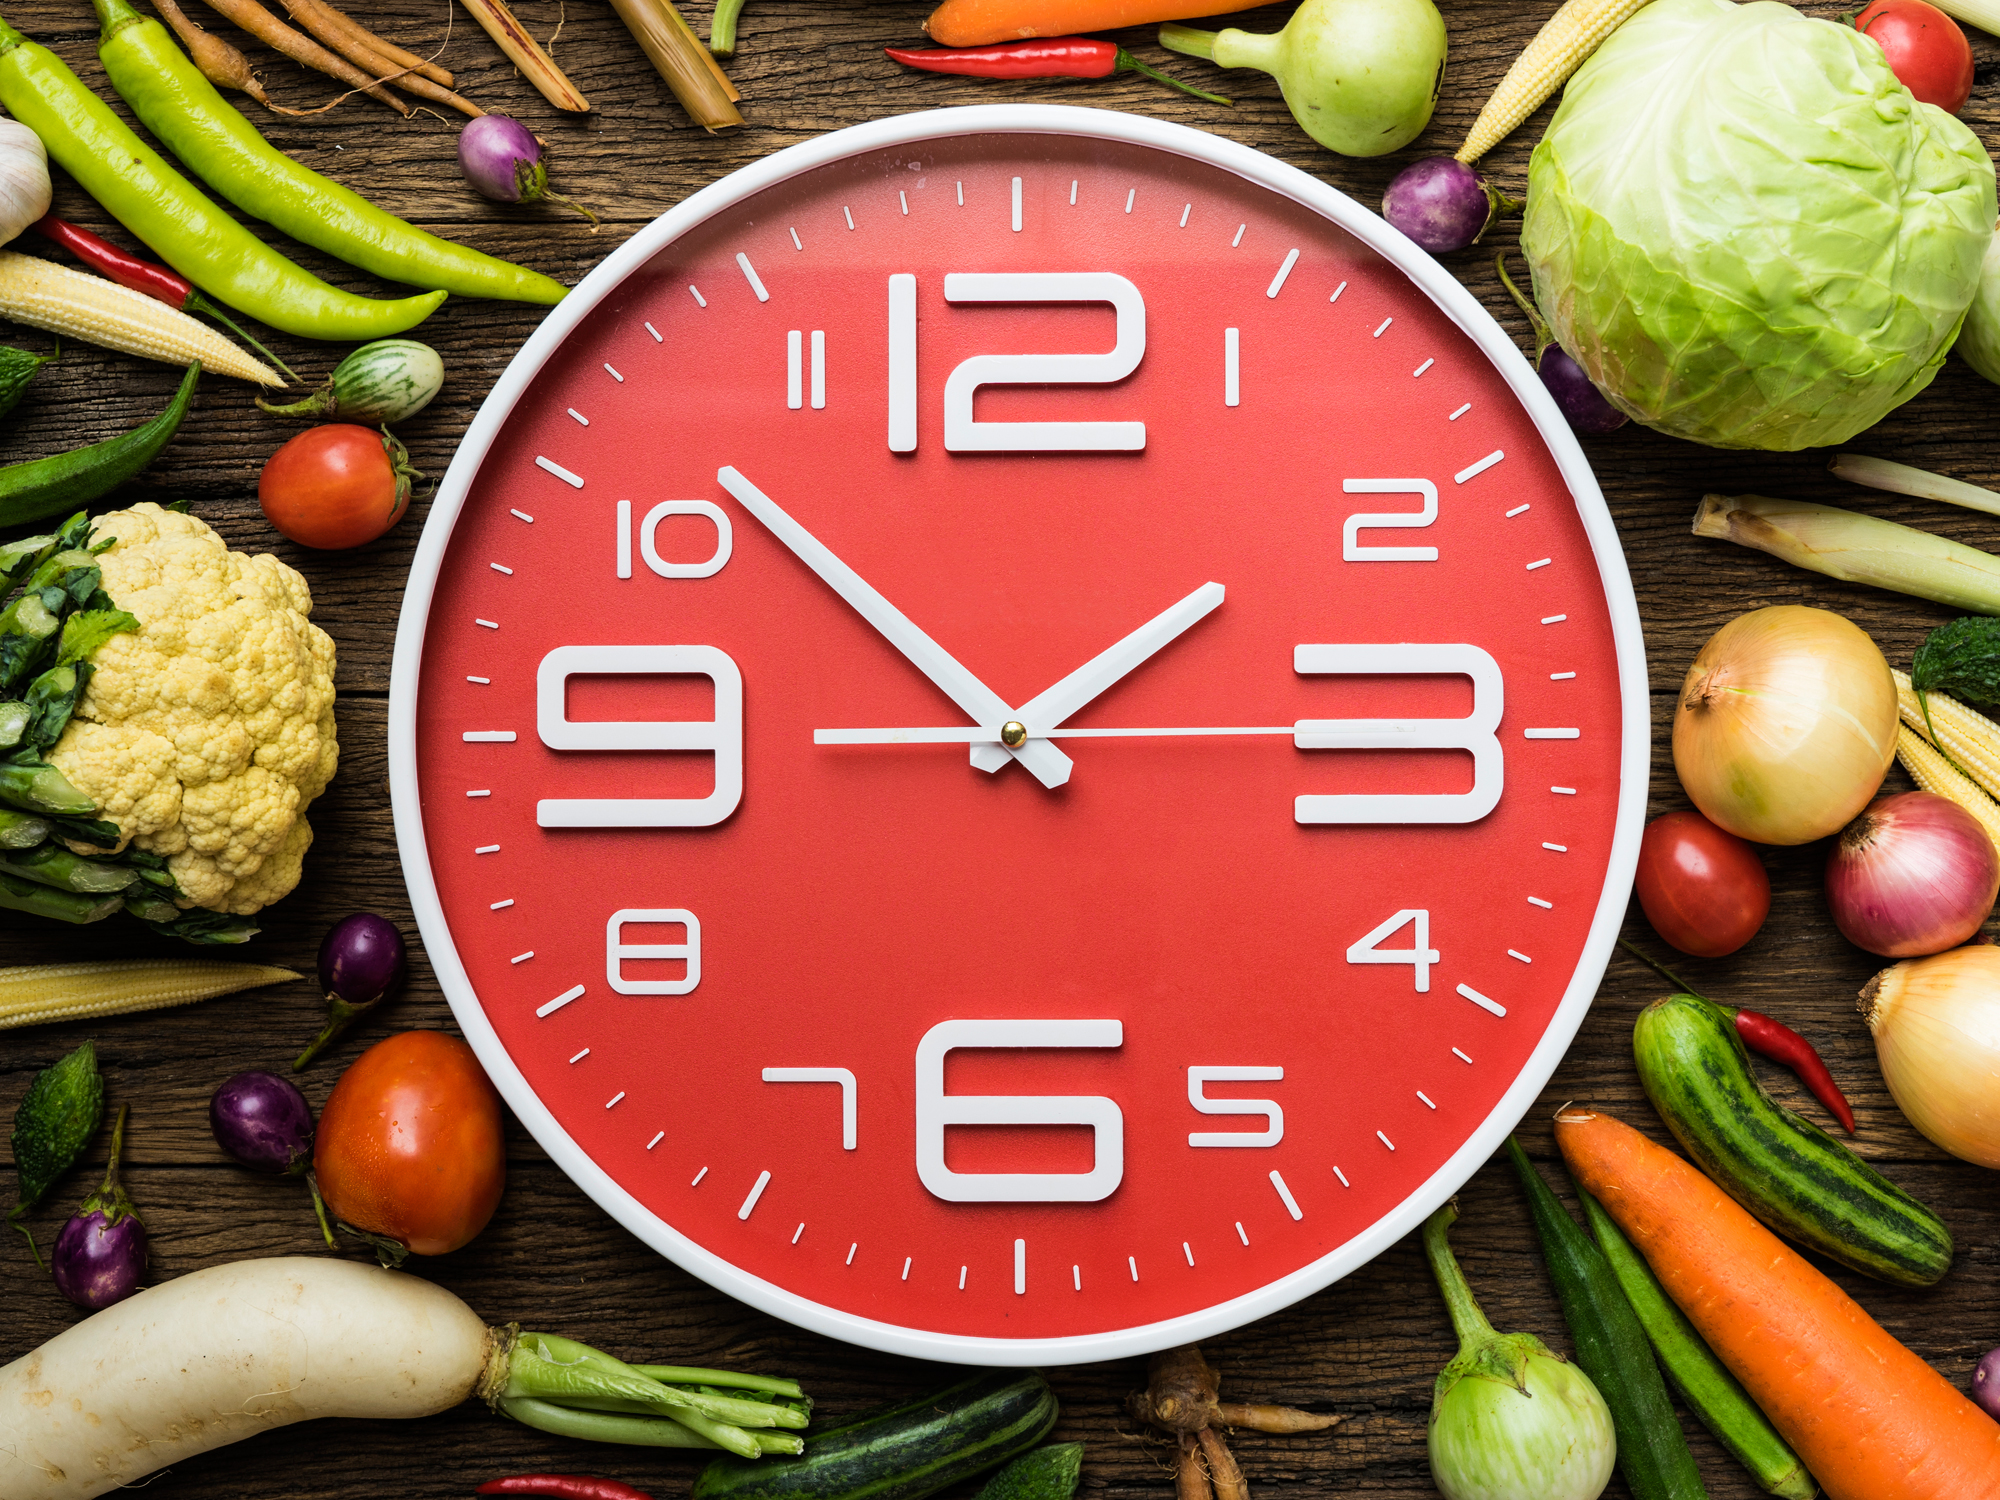 The right meal time saves you from heart attack and stroke